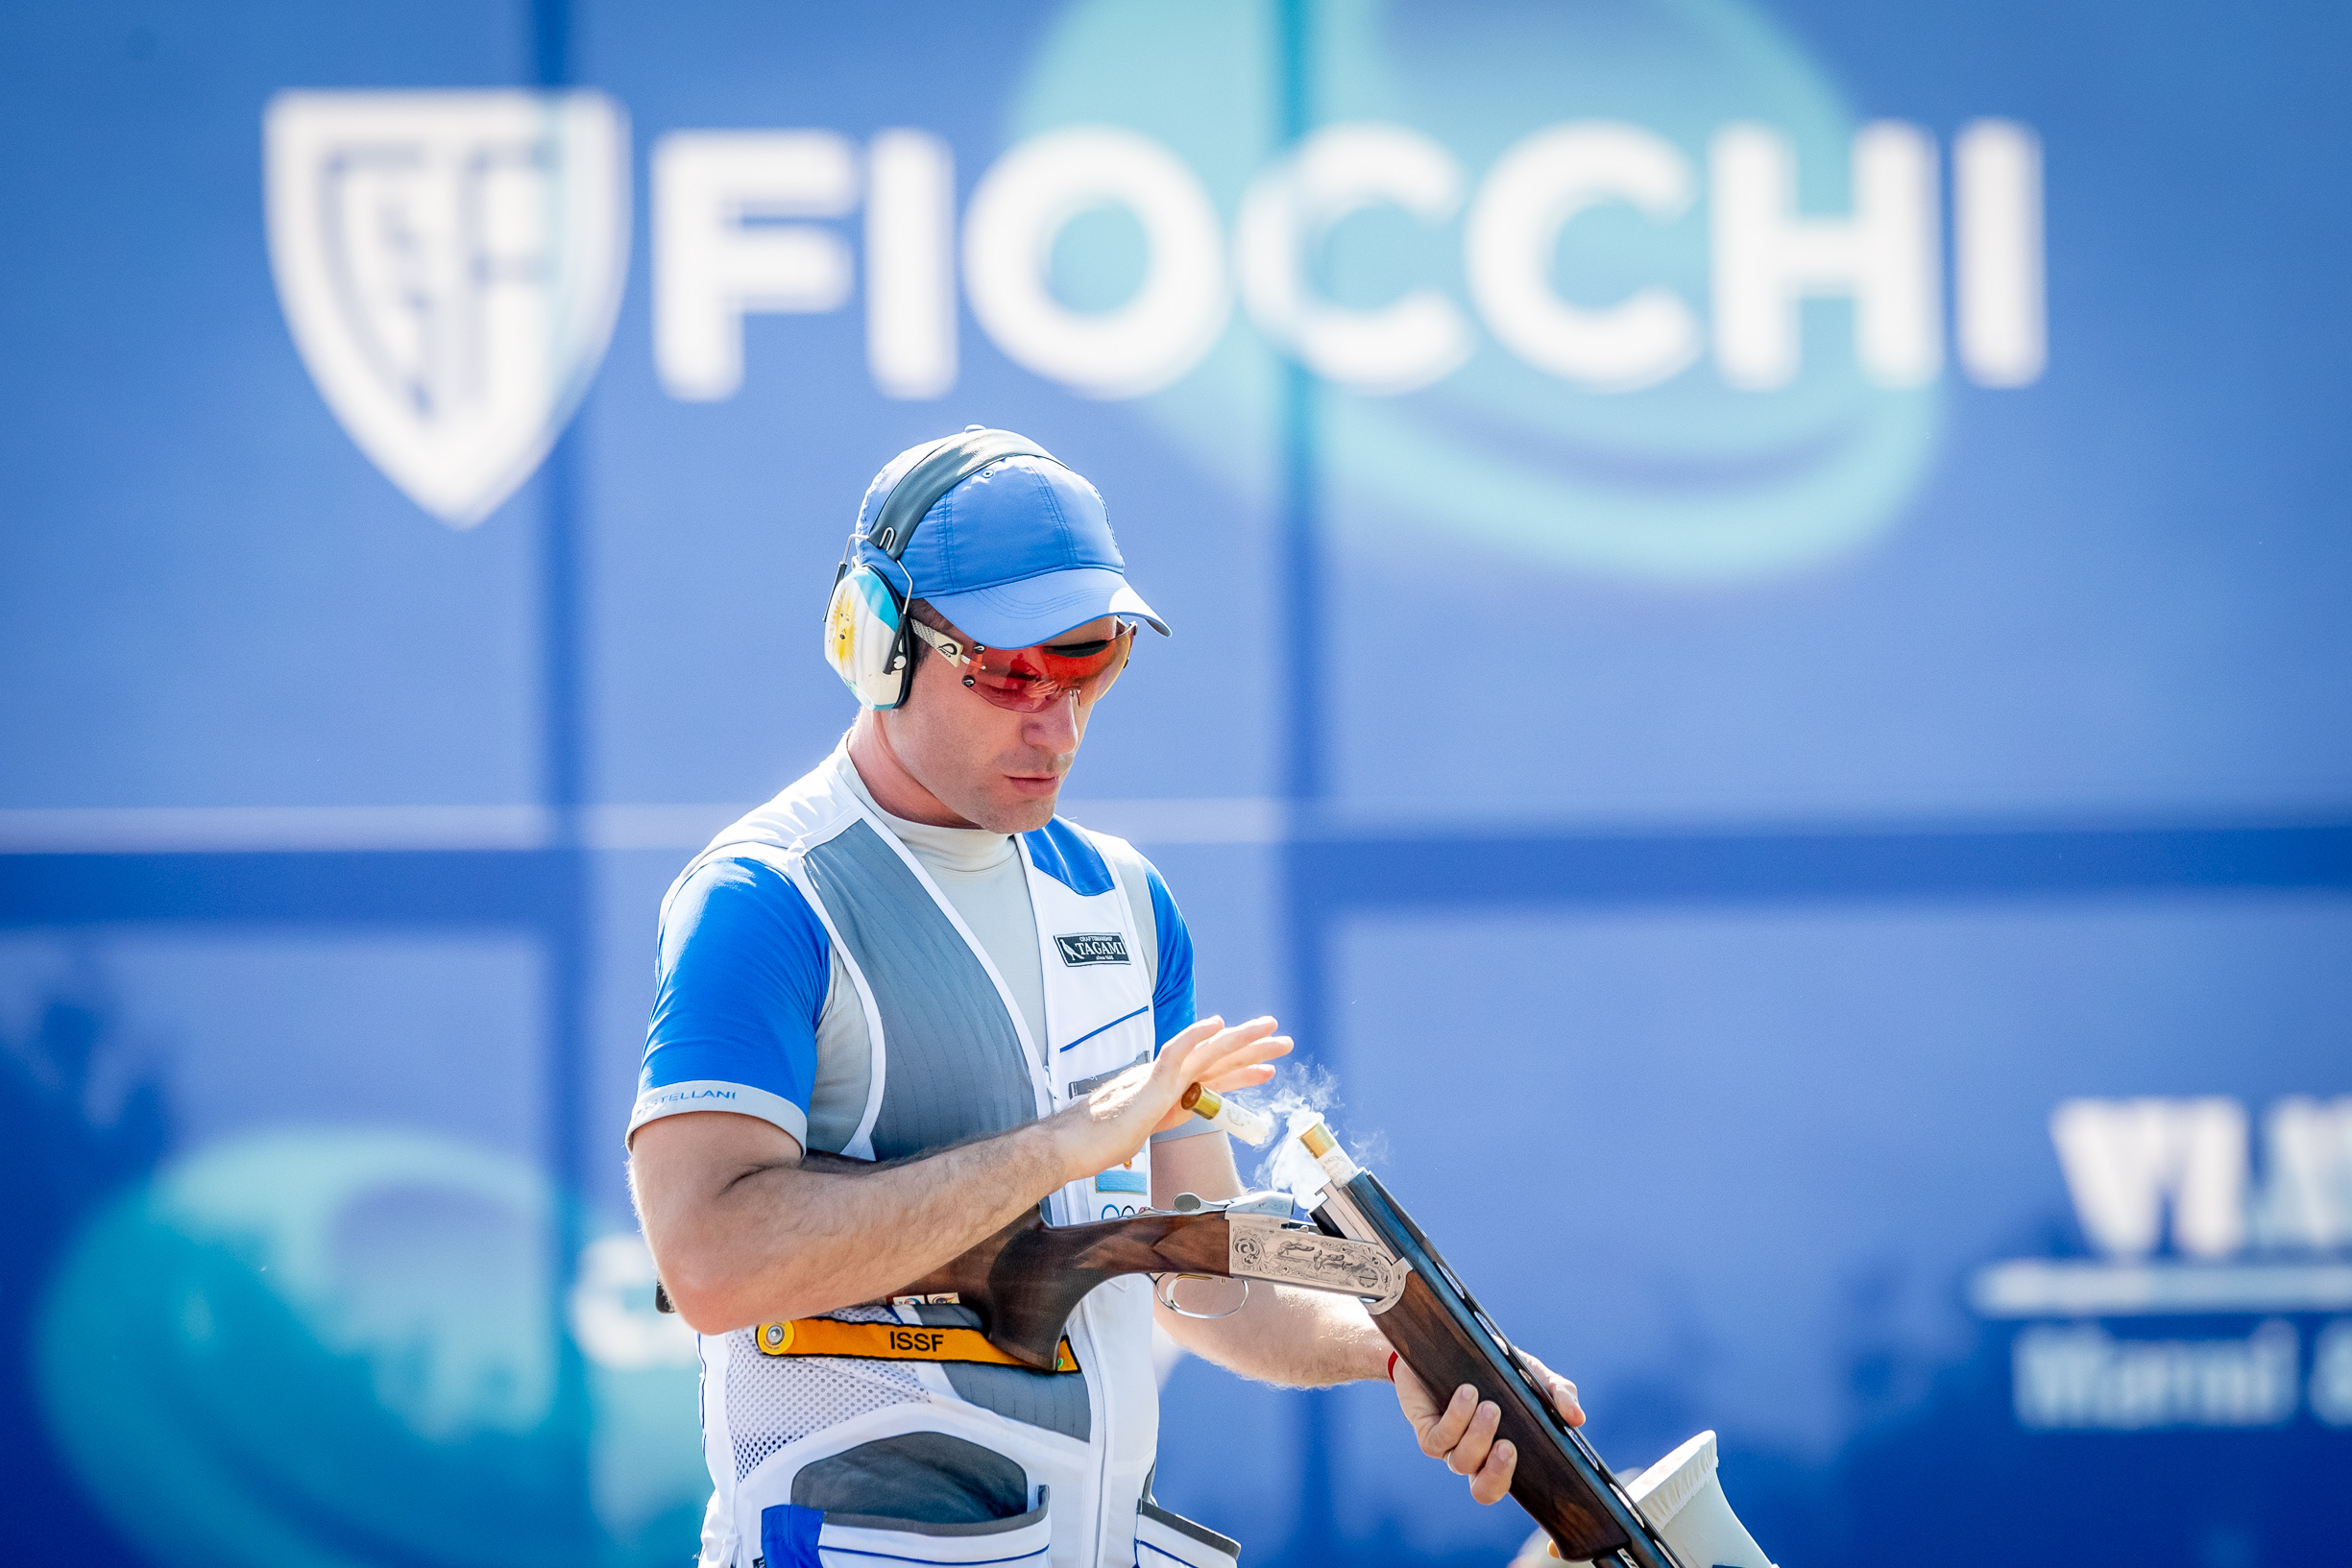 SHOTGUN. TWO MEDALS IN THE FIRST STAGE OF WORLD CUP